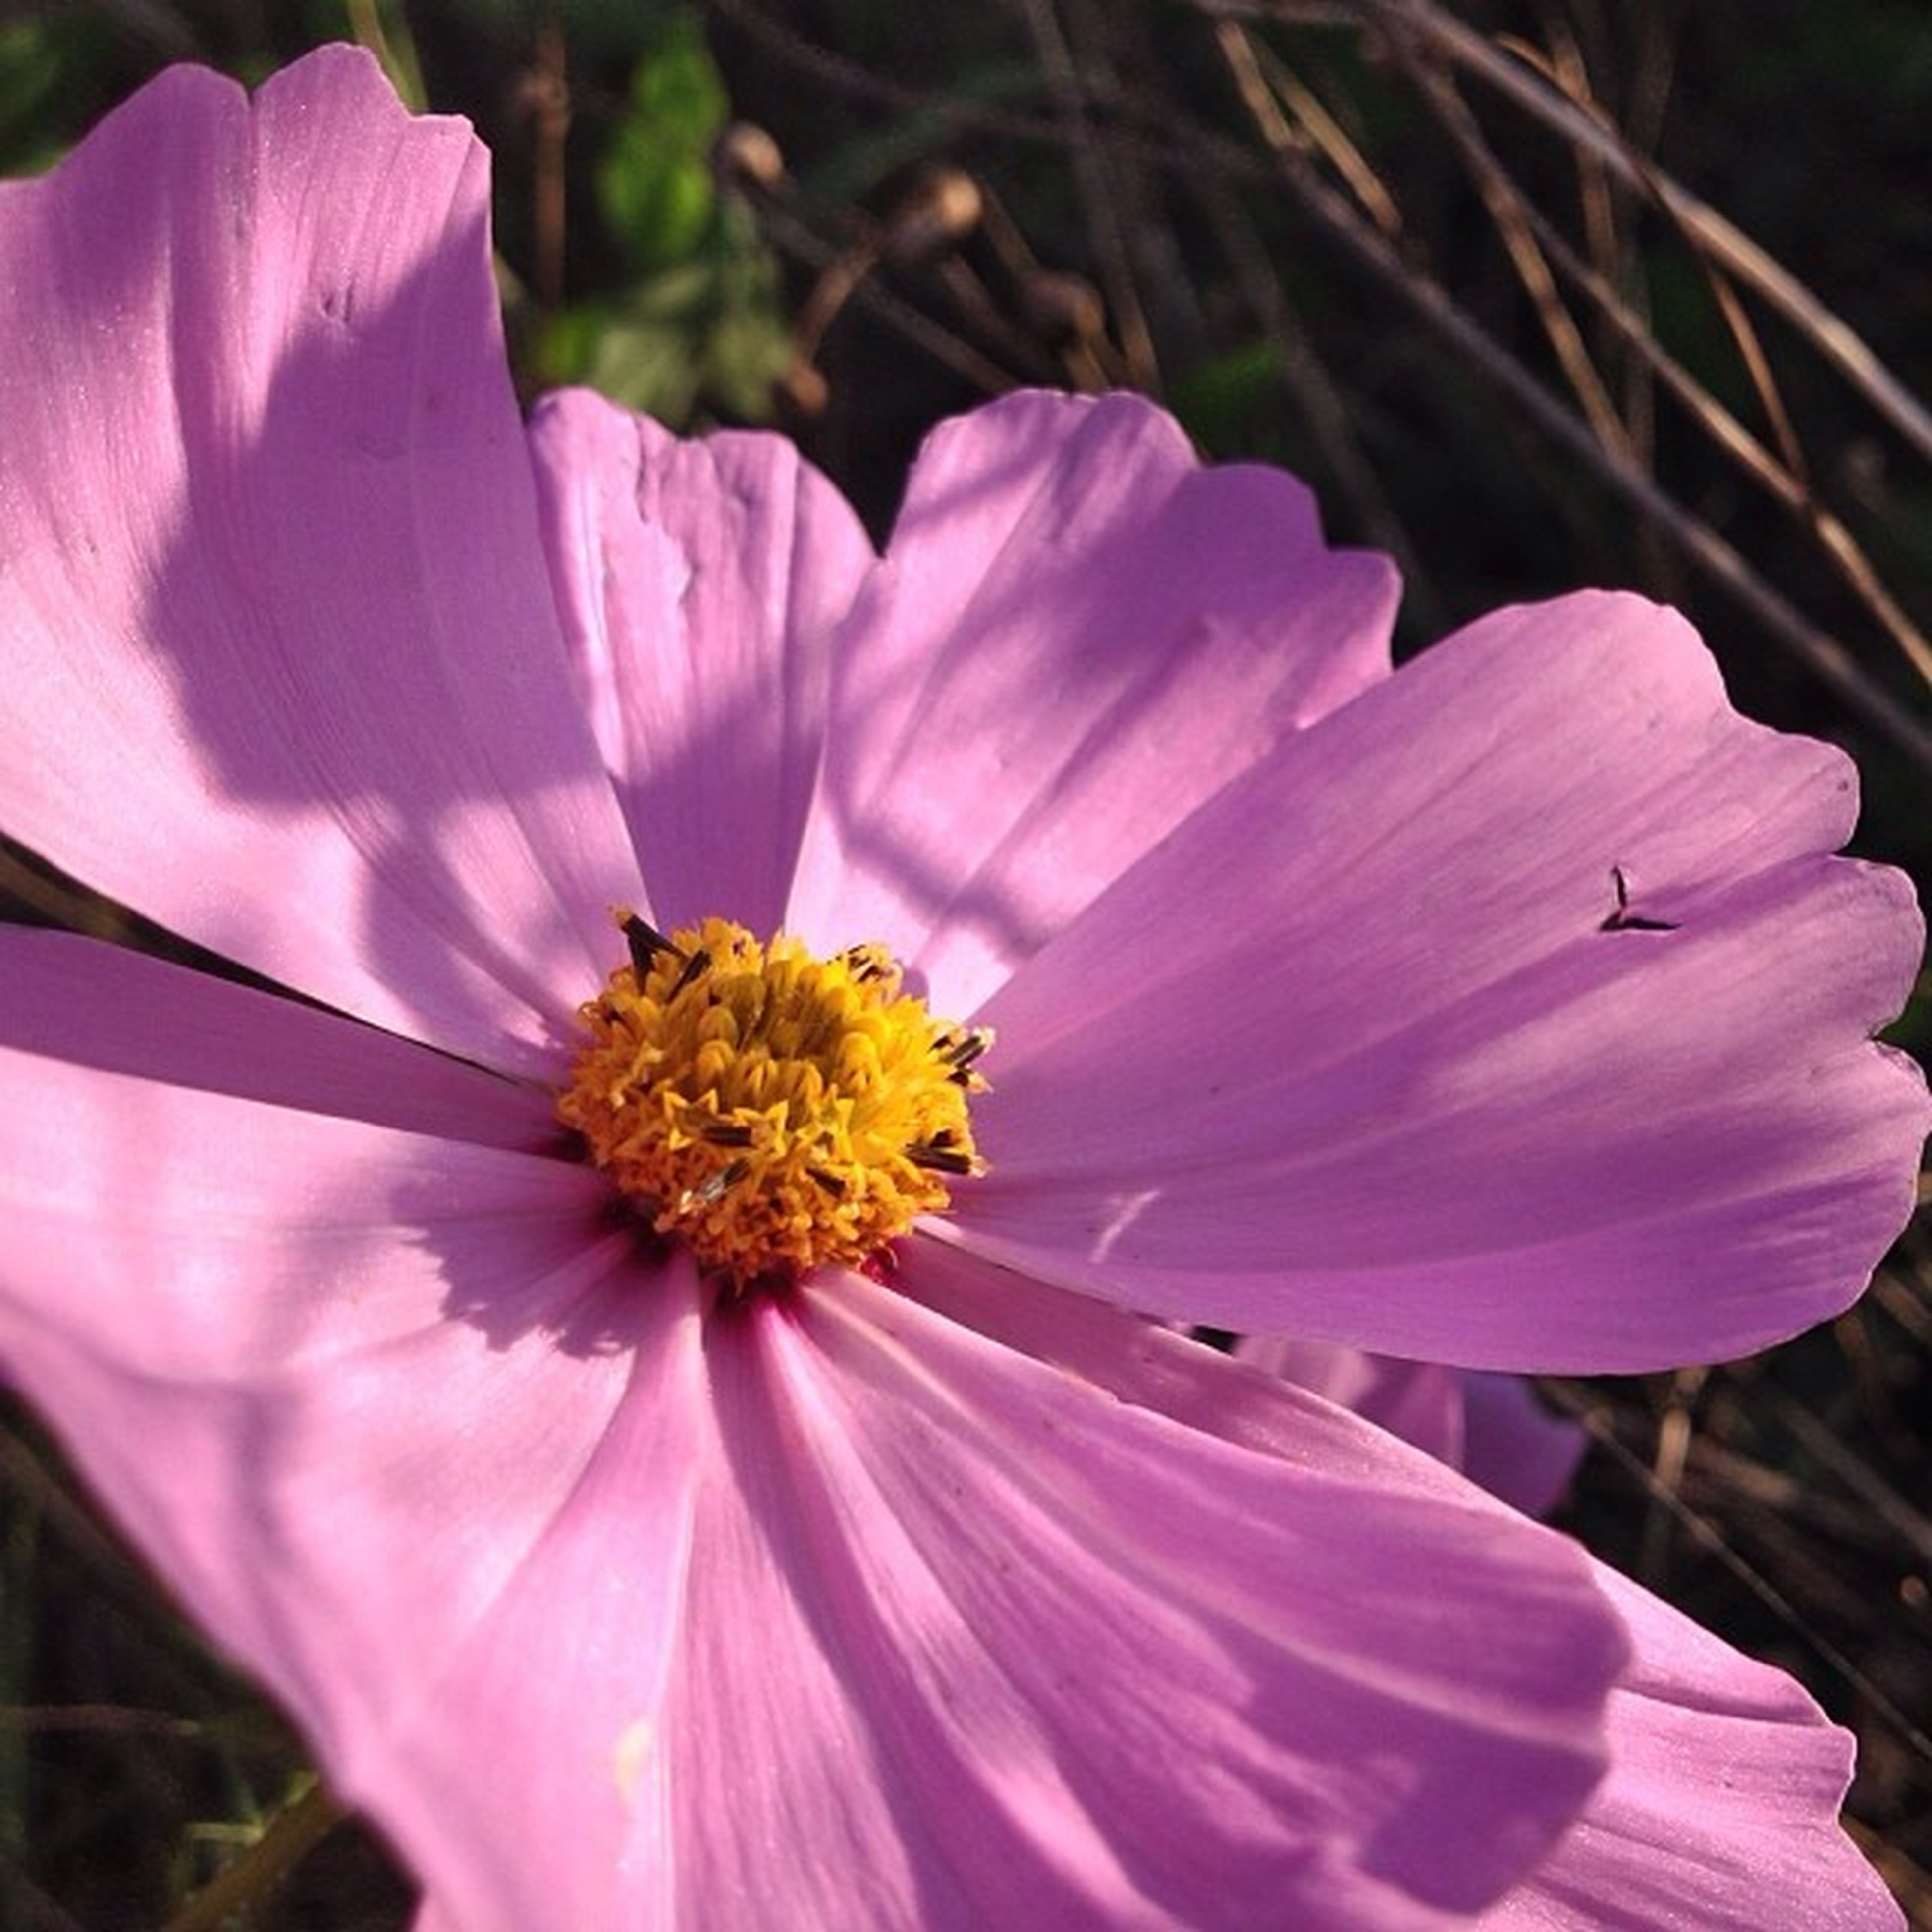 flower, petal, freshness, flower head, fragility, pink color, close-up, pollen, beauty in nature, stamen, single flower, growth, nature, blooming, focus on foreground, purple, blossom, in bloom, plant, no people